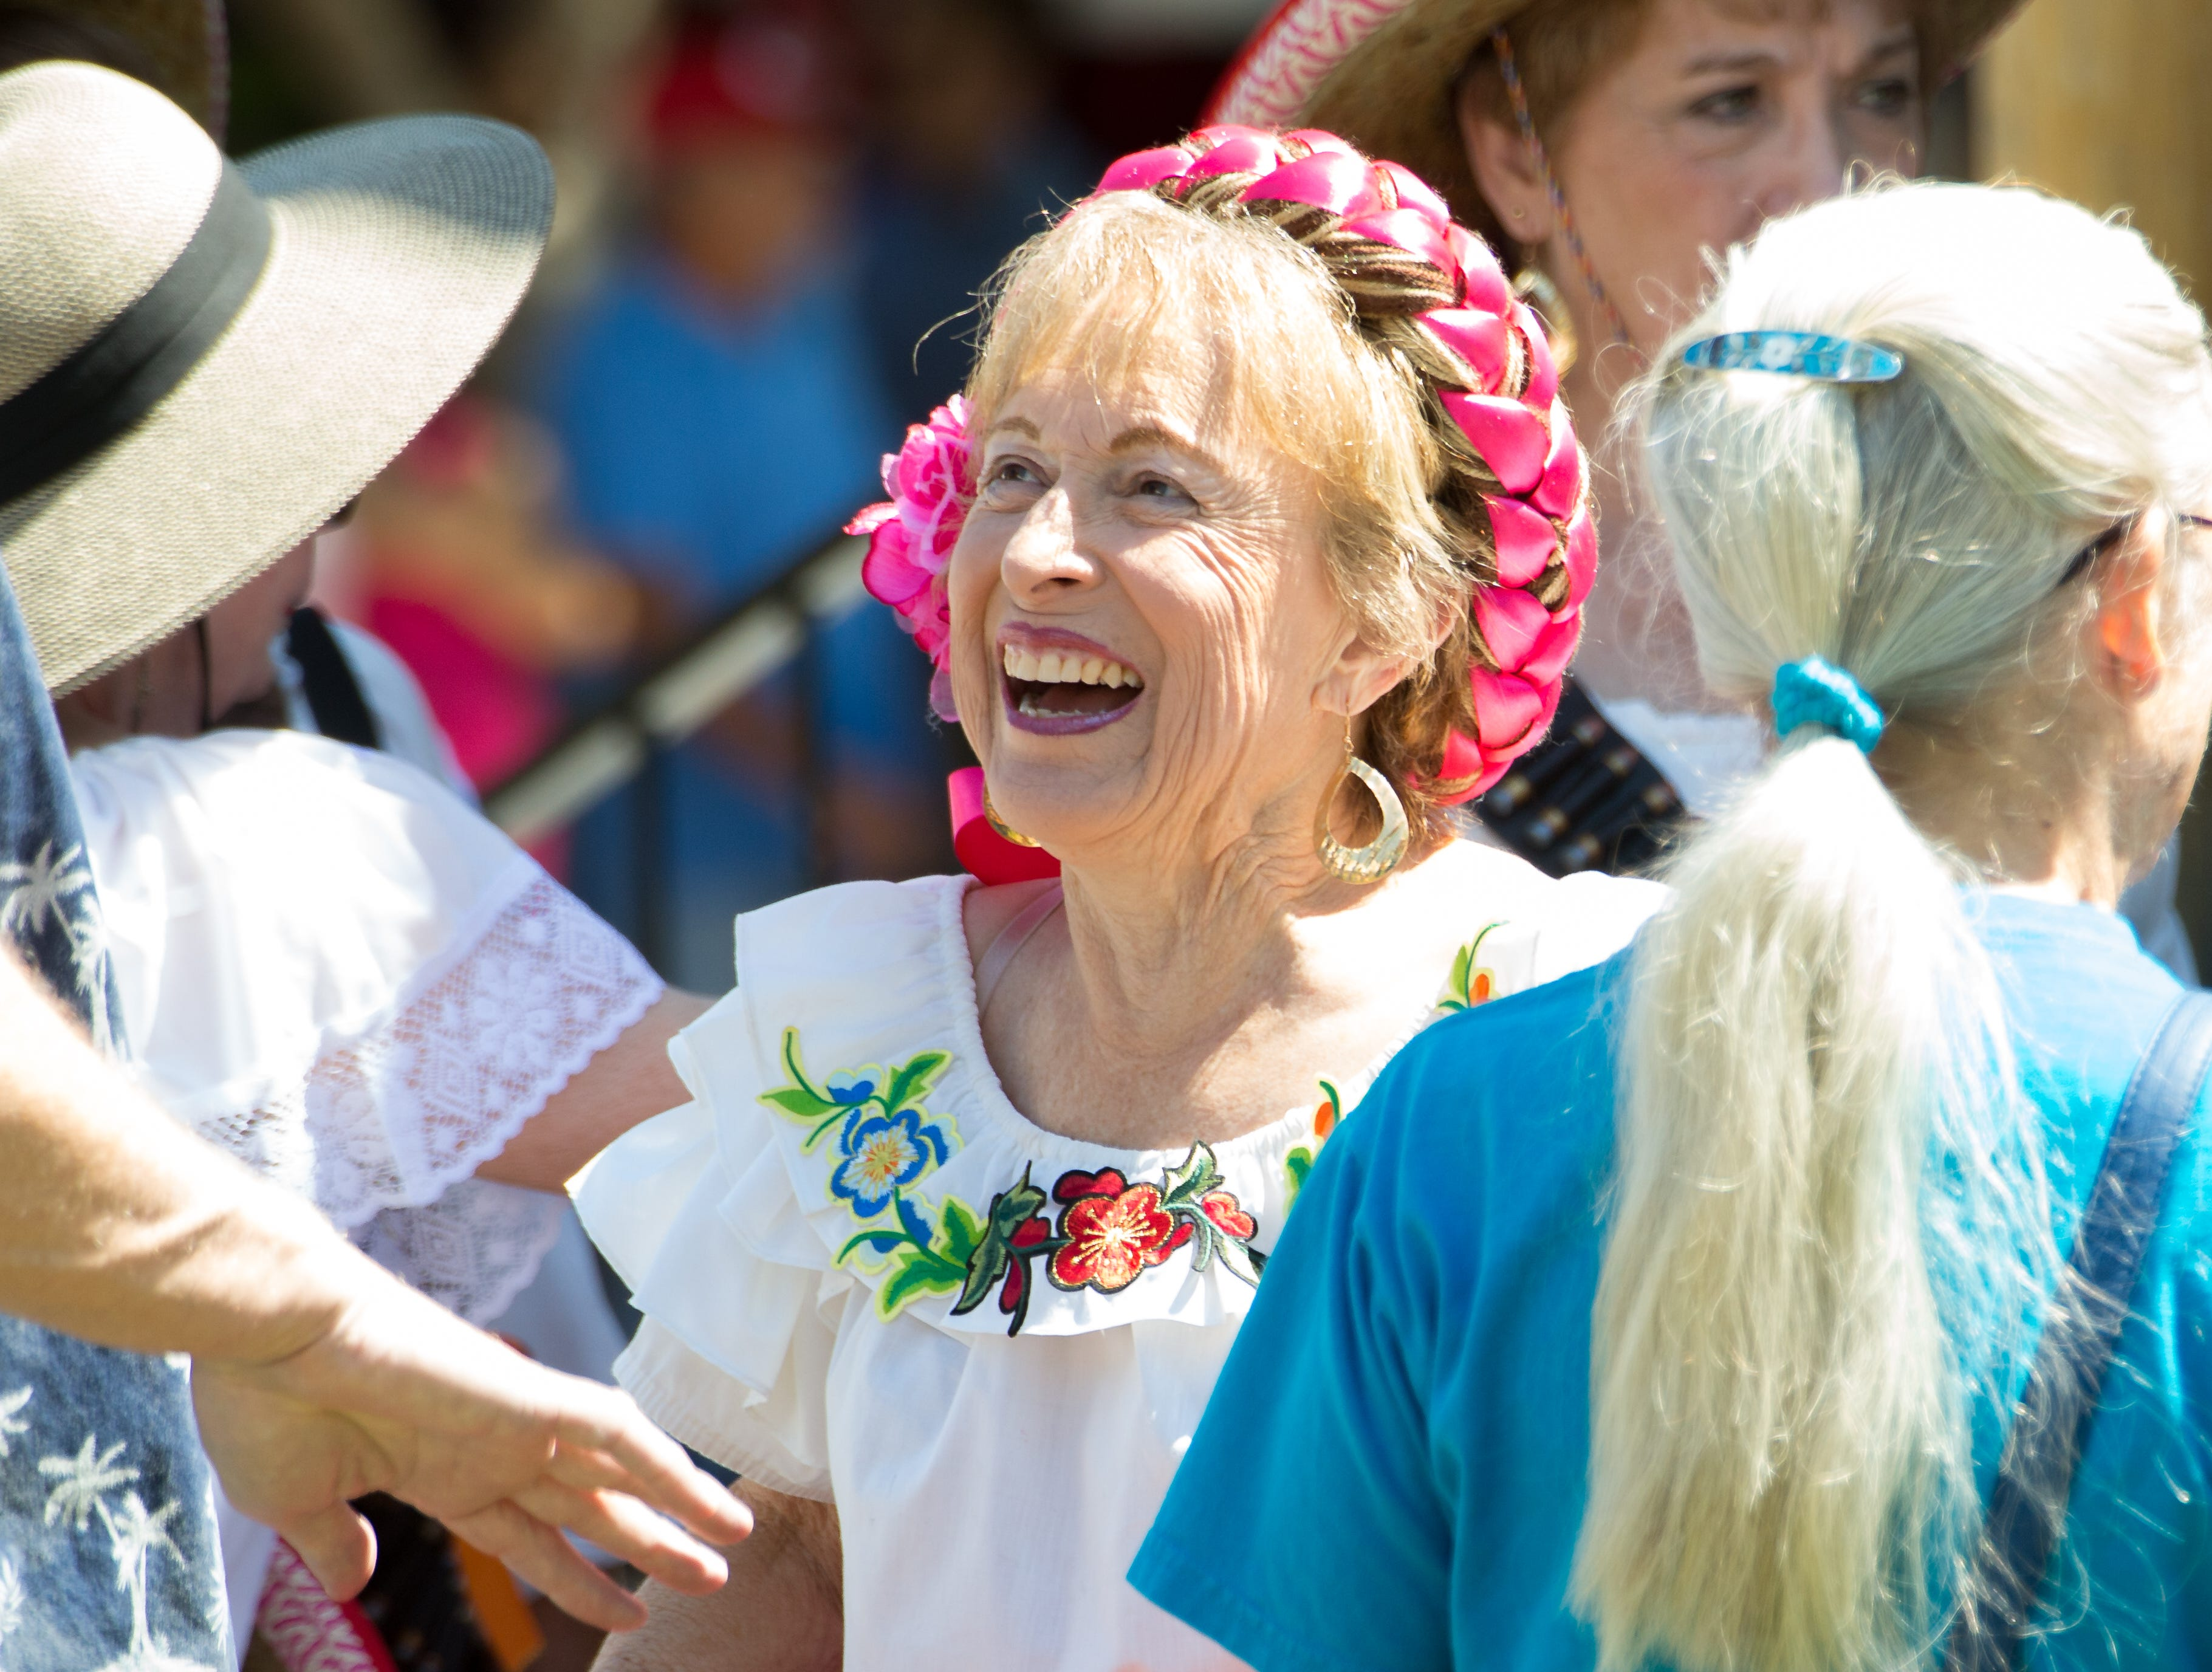 Director of Ballet Folkorico Las Floresitas del Valle Adela Eaton smiles as she chats before performing  in the Mesilla plaza on Sunday, September 16, 2018 during the Diez y Seis de September Fiesta.